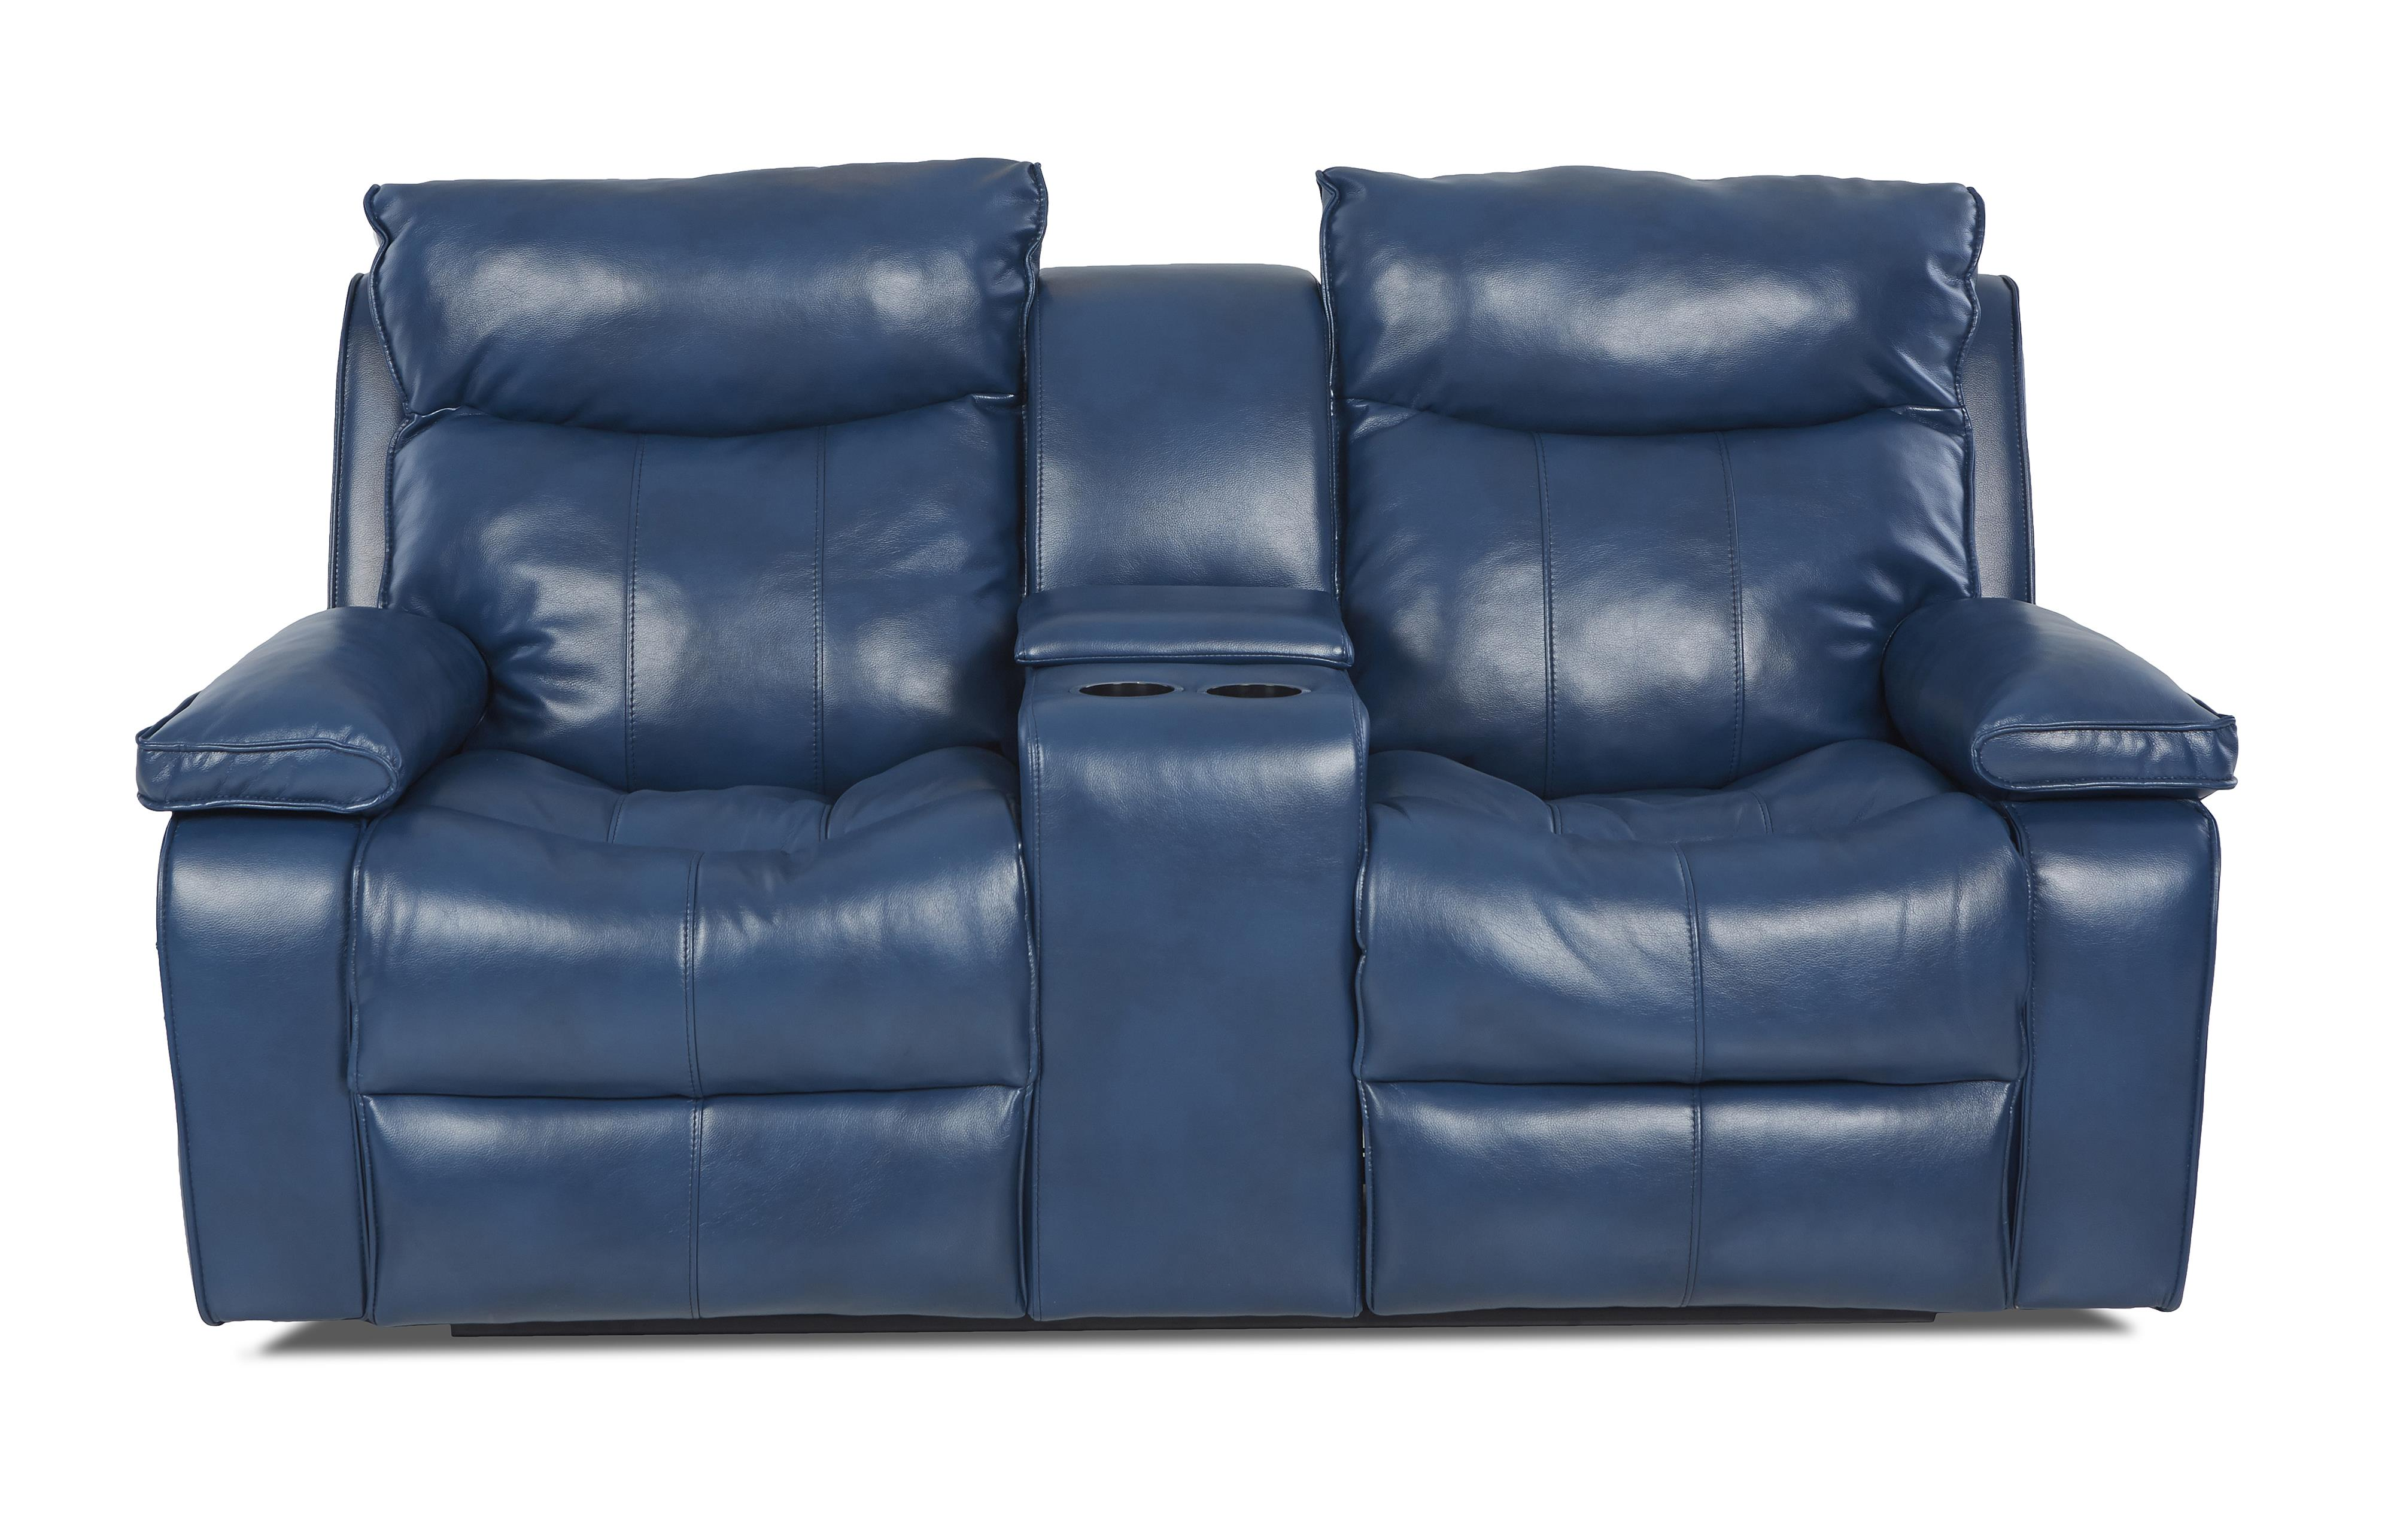 Wilson Contemporary Power Console Reclining Loveseat By Klaussner Wolf Furniture